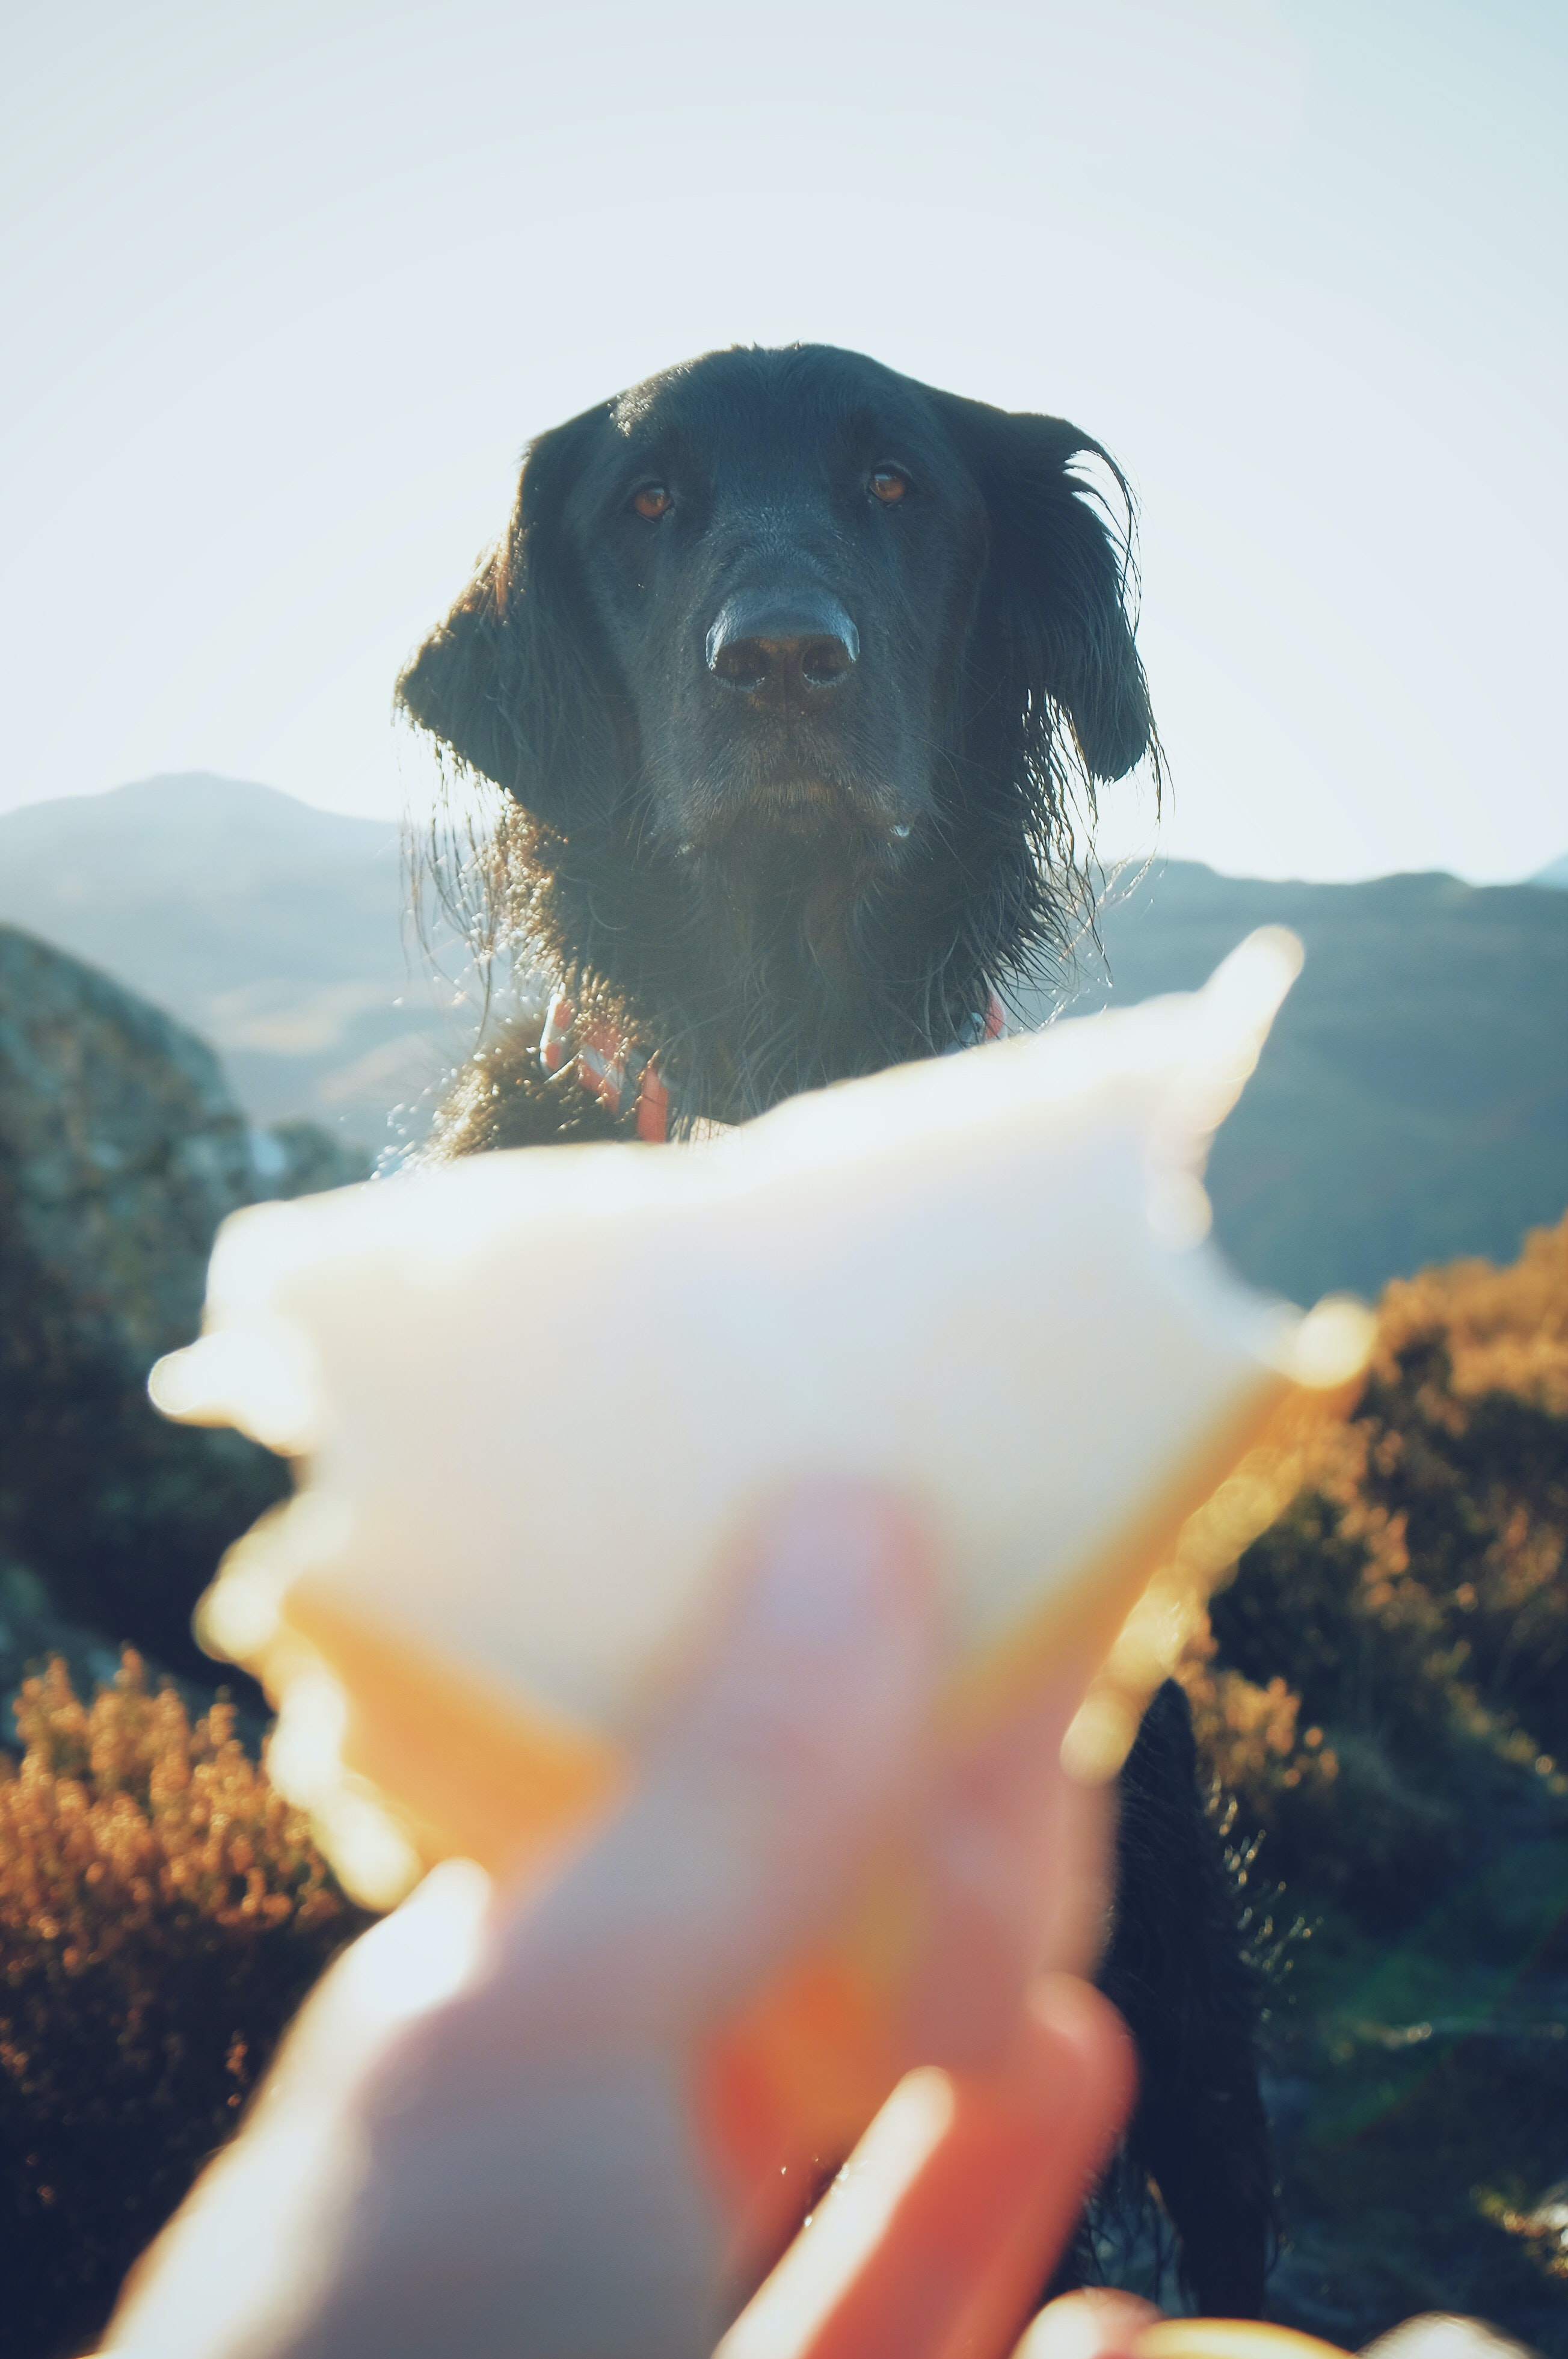 wet adult black flat-coated retriever looking at sandwich